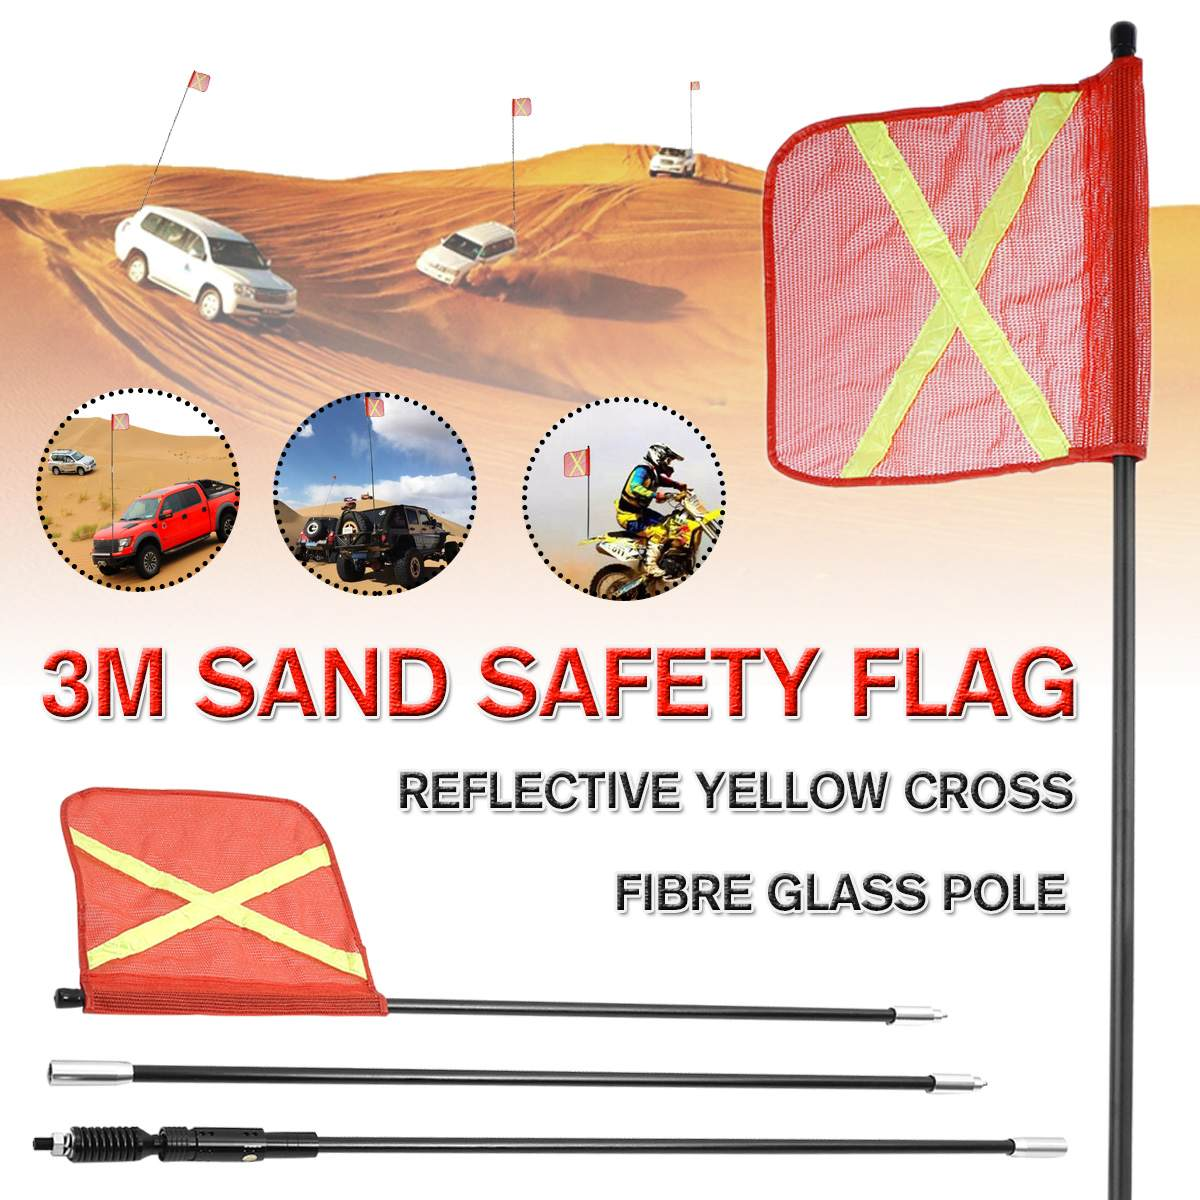 300cm Vehicle Warning Safety Flag Kit Sand Flag For Simpson Desert Mining Safety Flag For ATV Truck For Jeep For Sand Rails